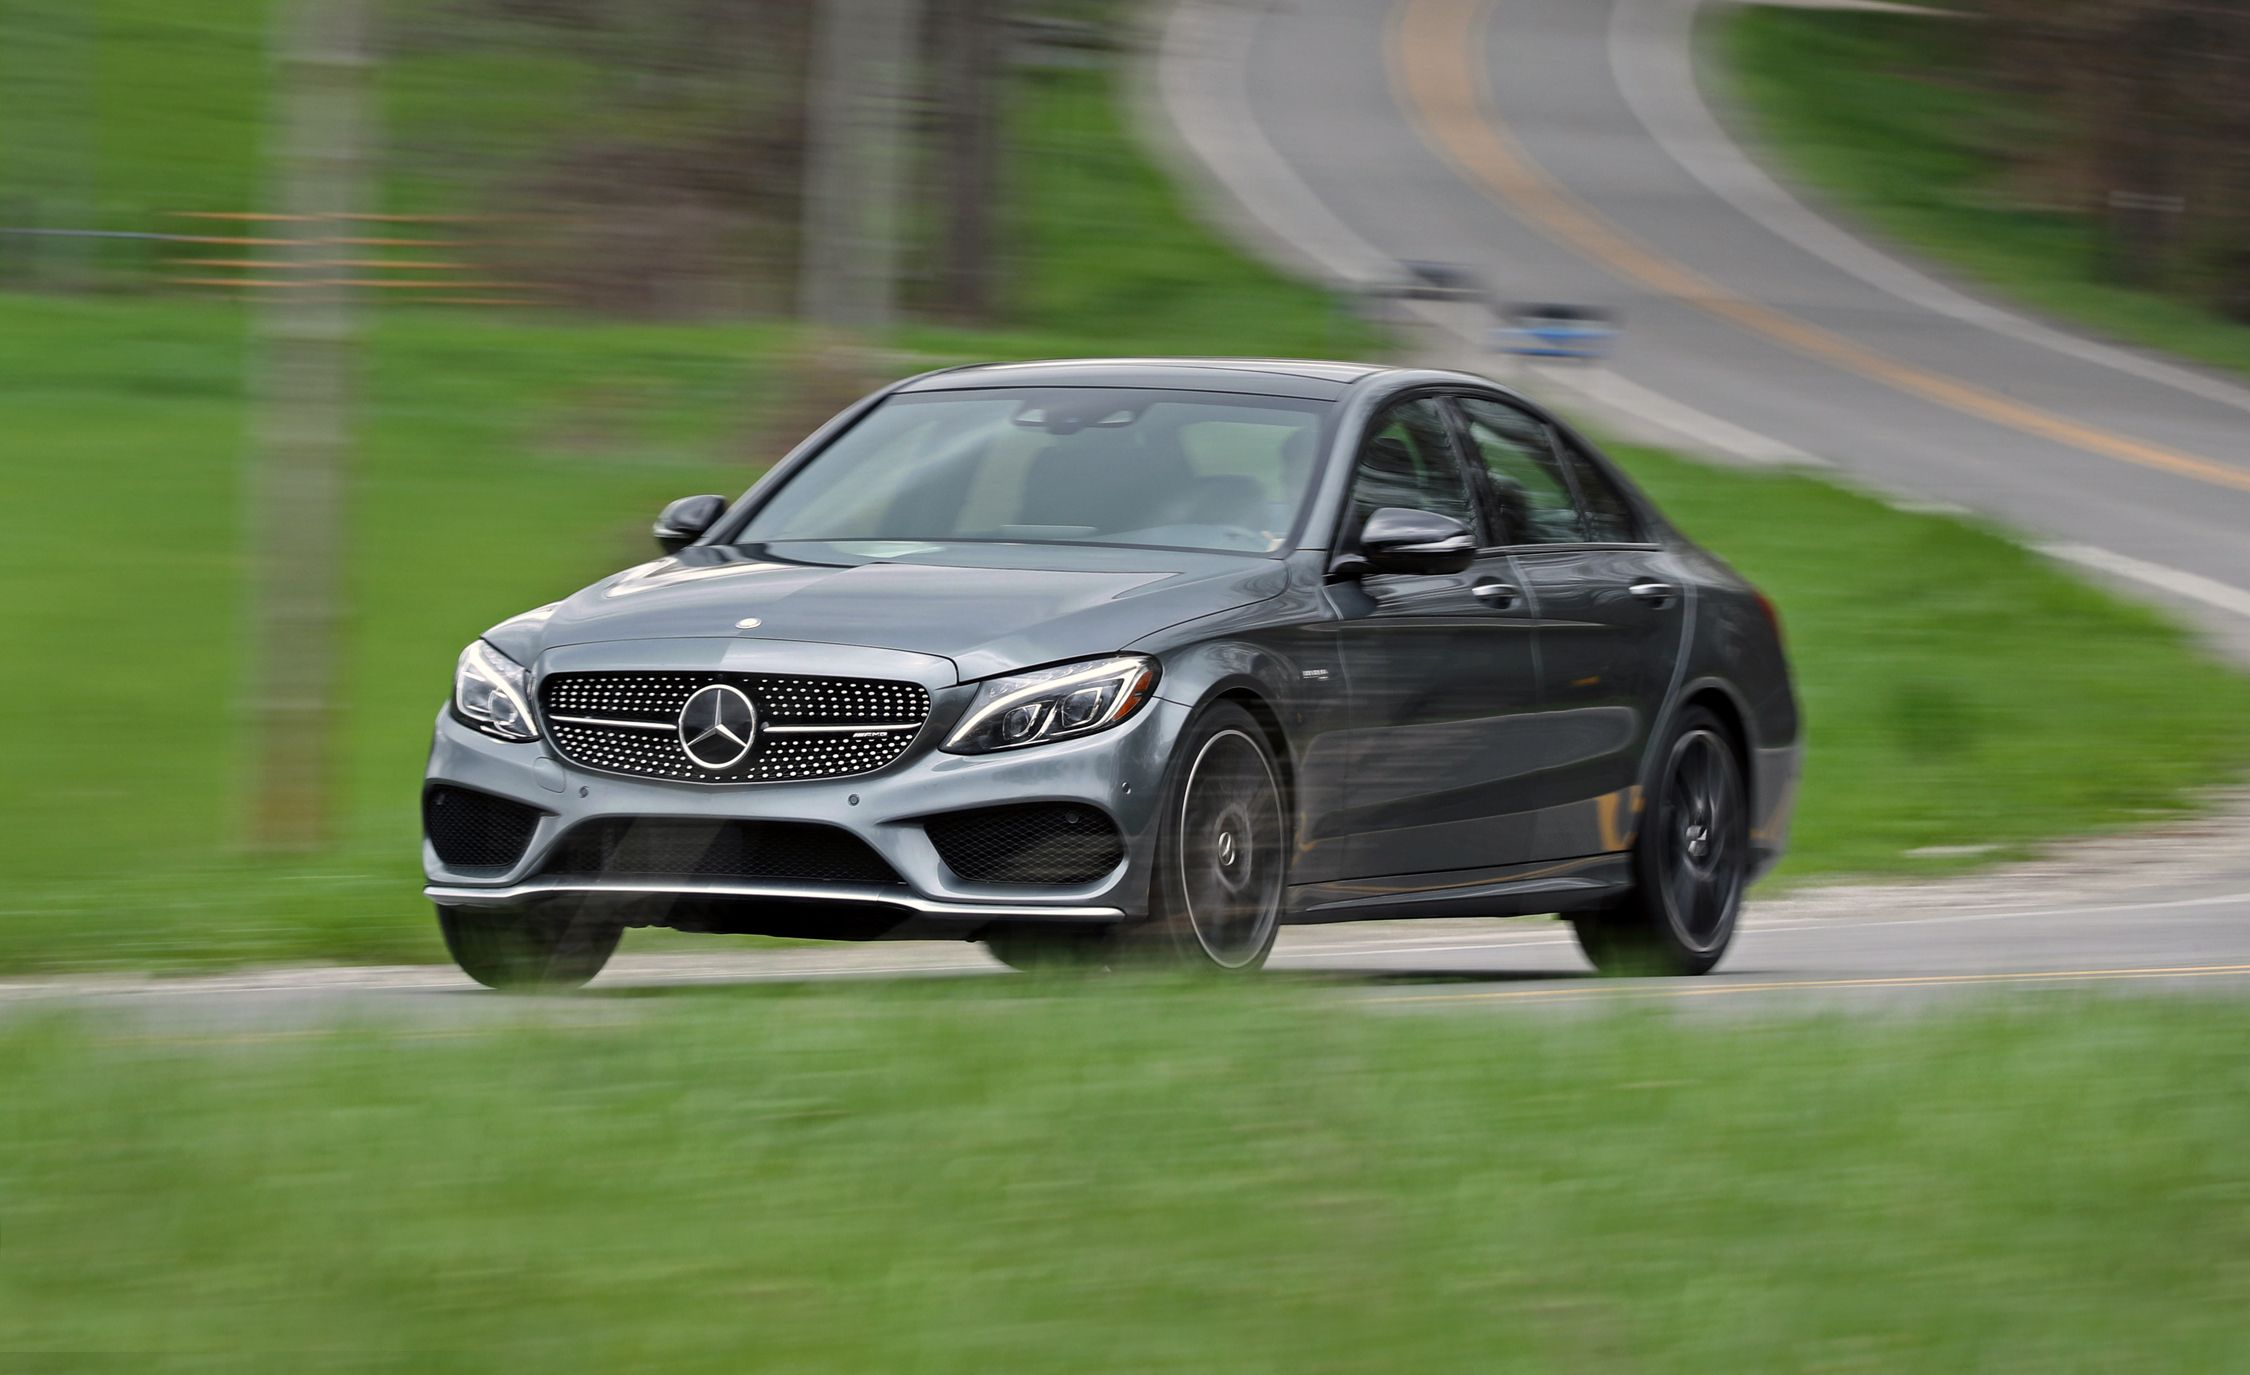 Mercedes-AMG C43 Reviews | Mercedes-AMG C43 Price, Photos, and Specs ...